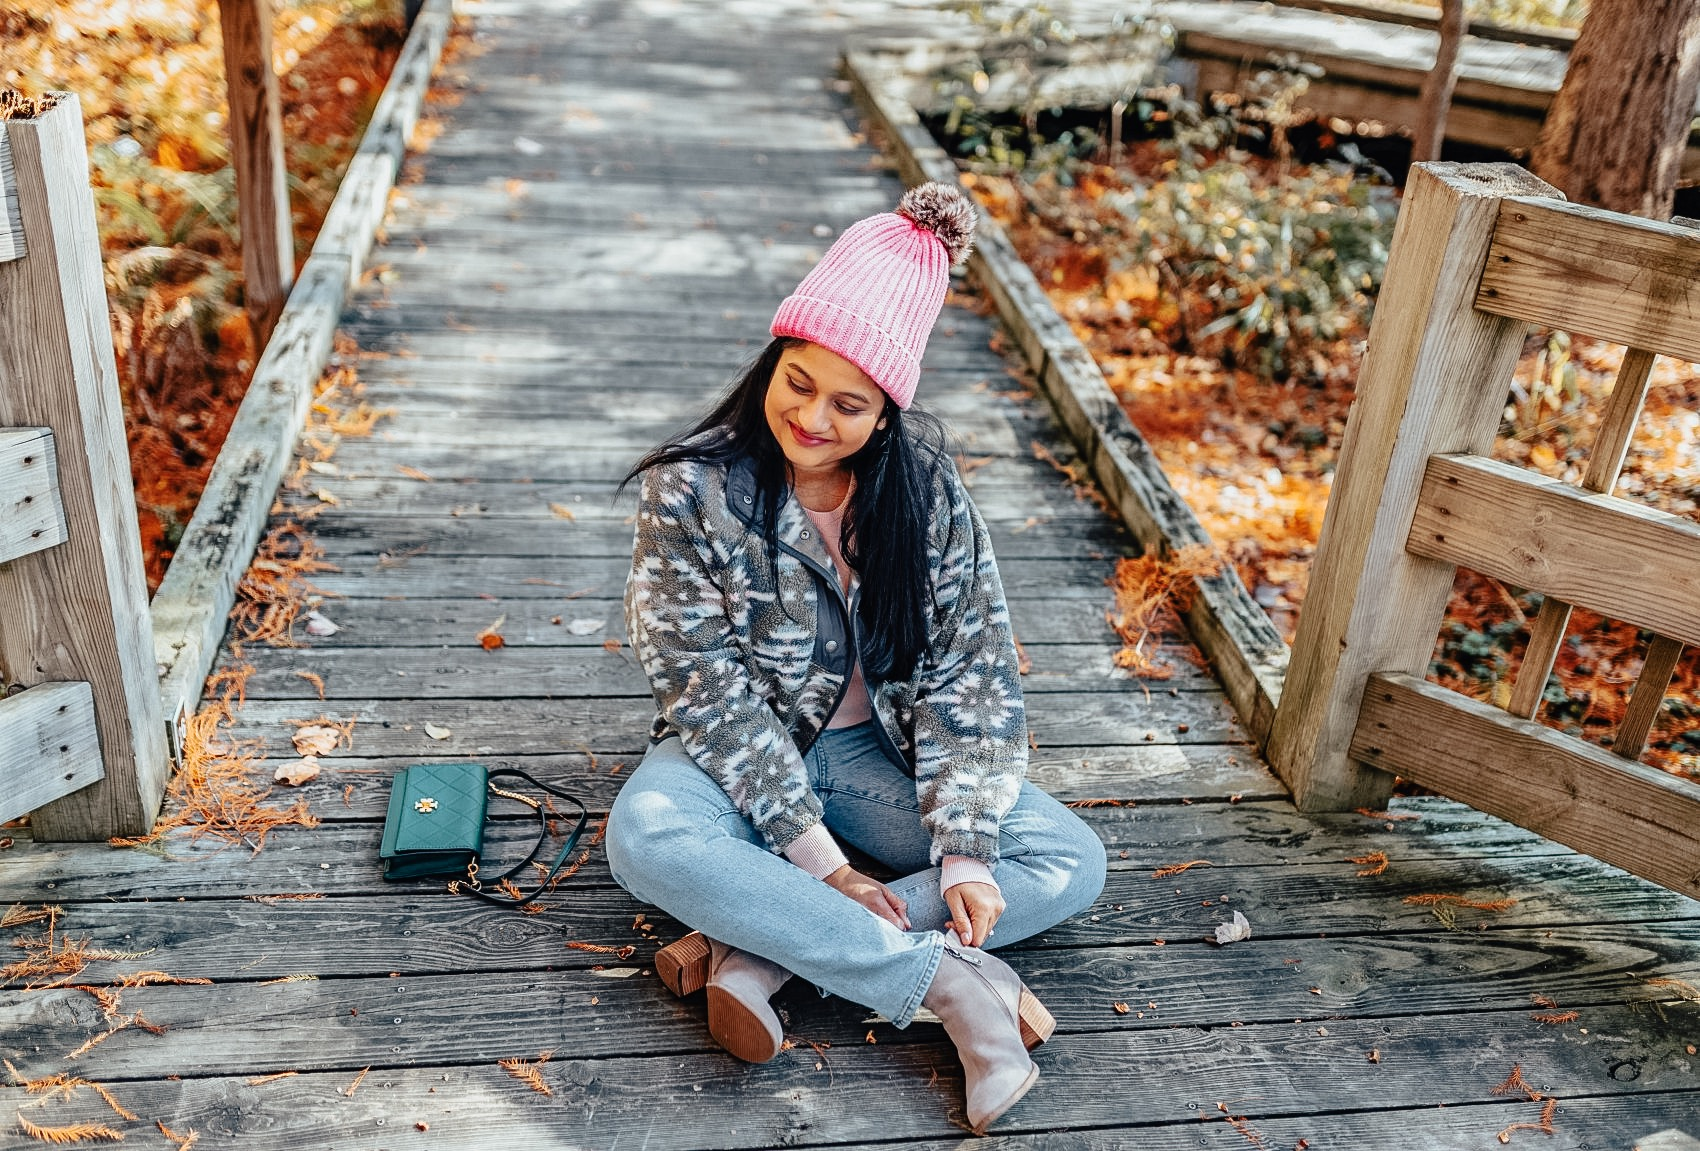 Printed Fleece Jacket styled for Fall by top US modest fashion blog, Dreaming Loud: image of a woman wearing American Eagle Printed Fleece Jacket,blondo Nina Waterproof Suede Boot, Neon pink beanie, everlane Cashmere Crew